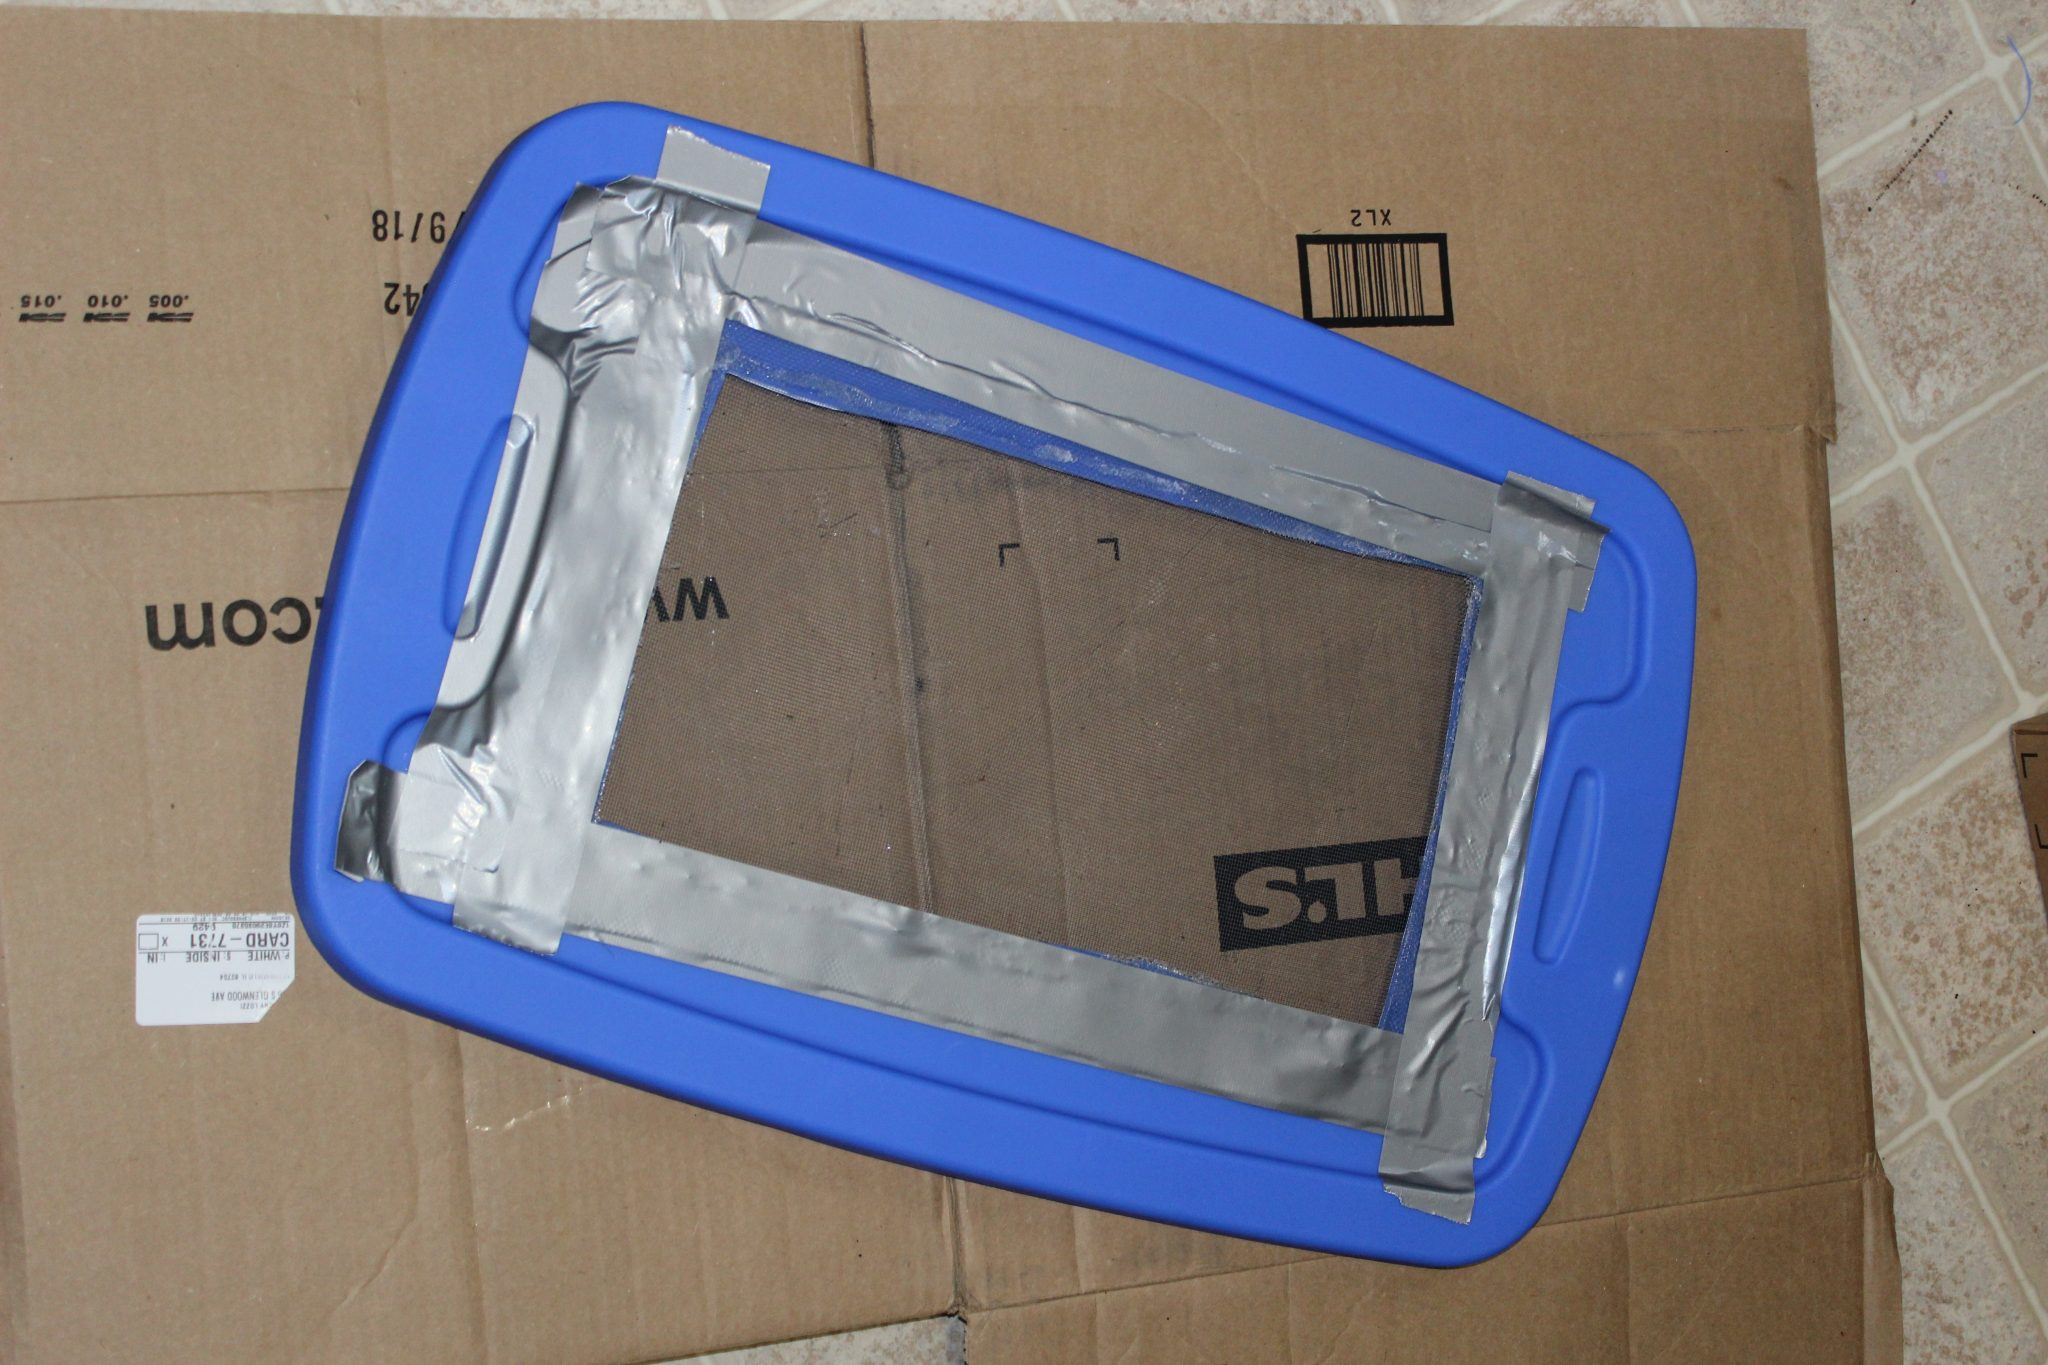 blue tote lid with center cut out and replaced by a screen and duct tape around edges holding screen in place